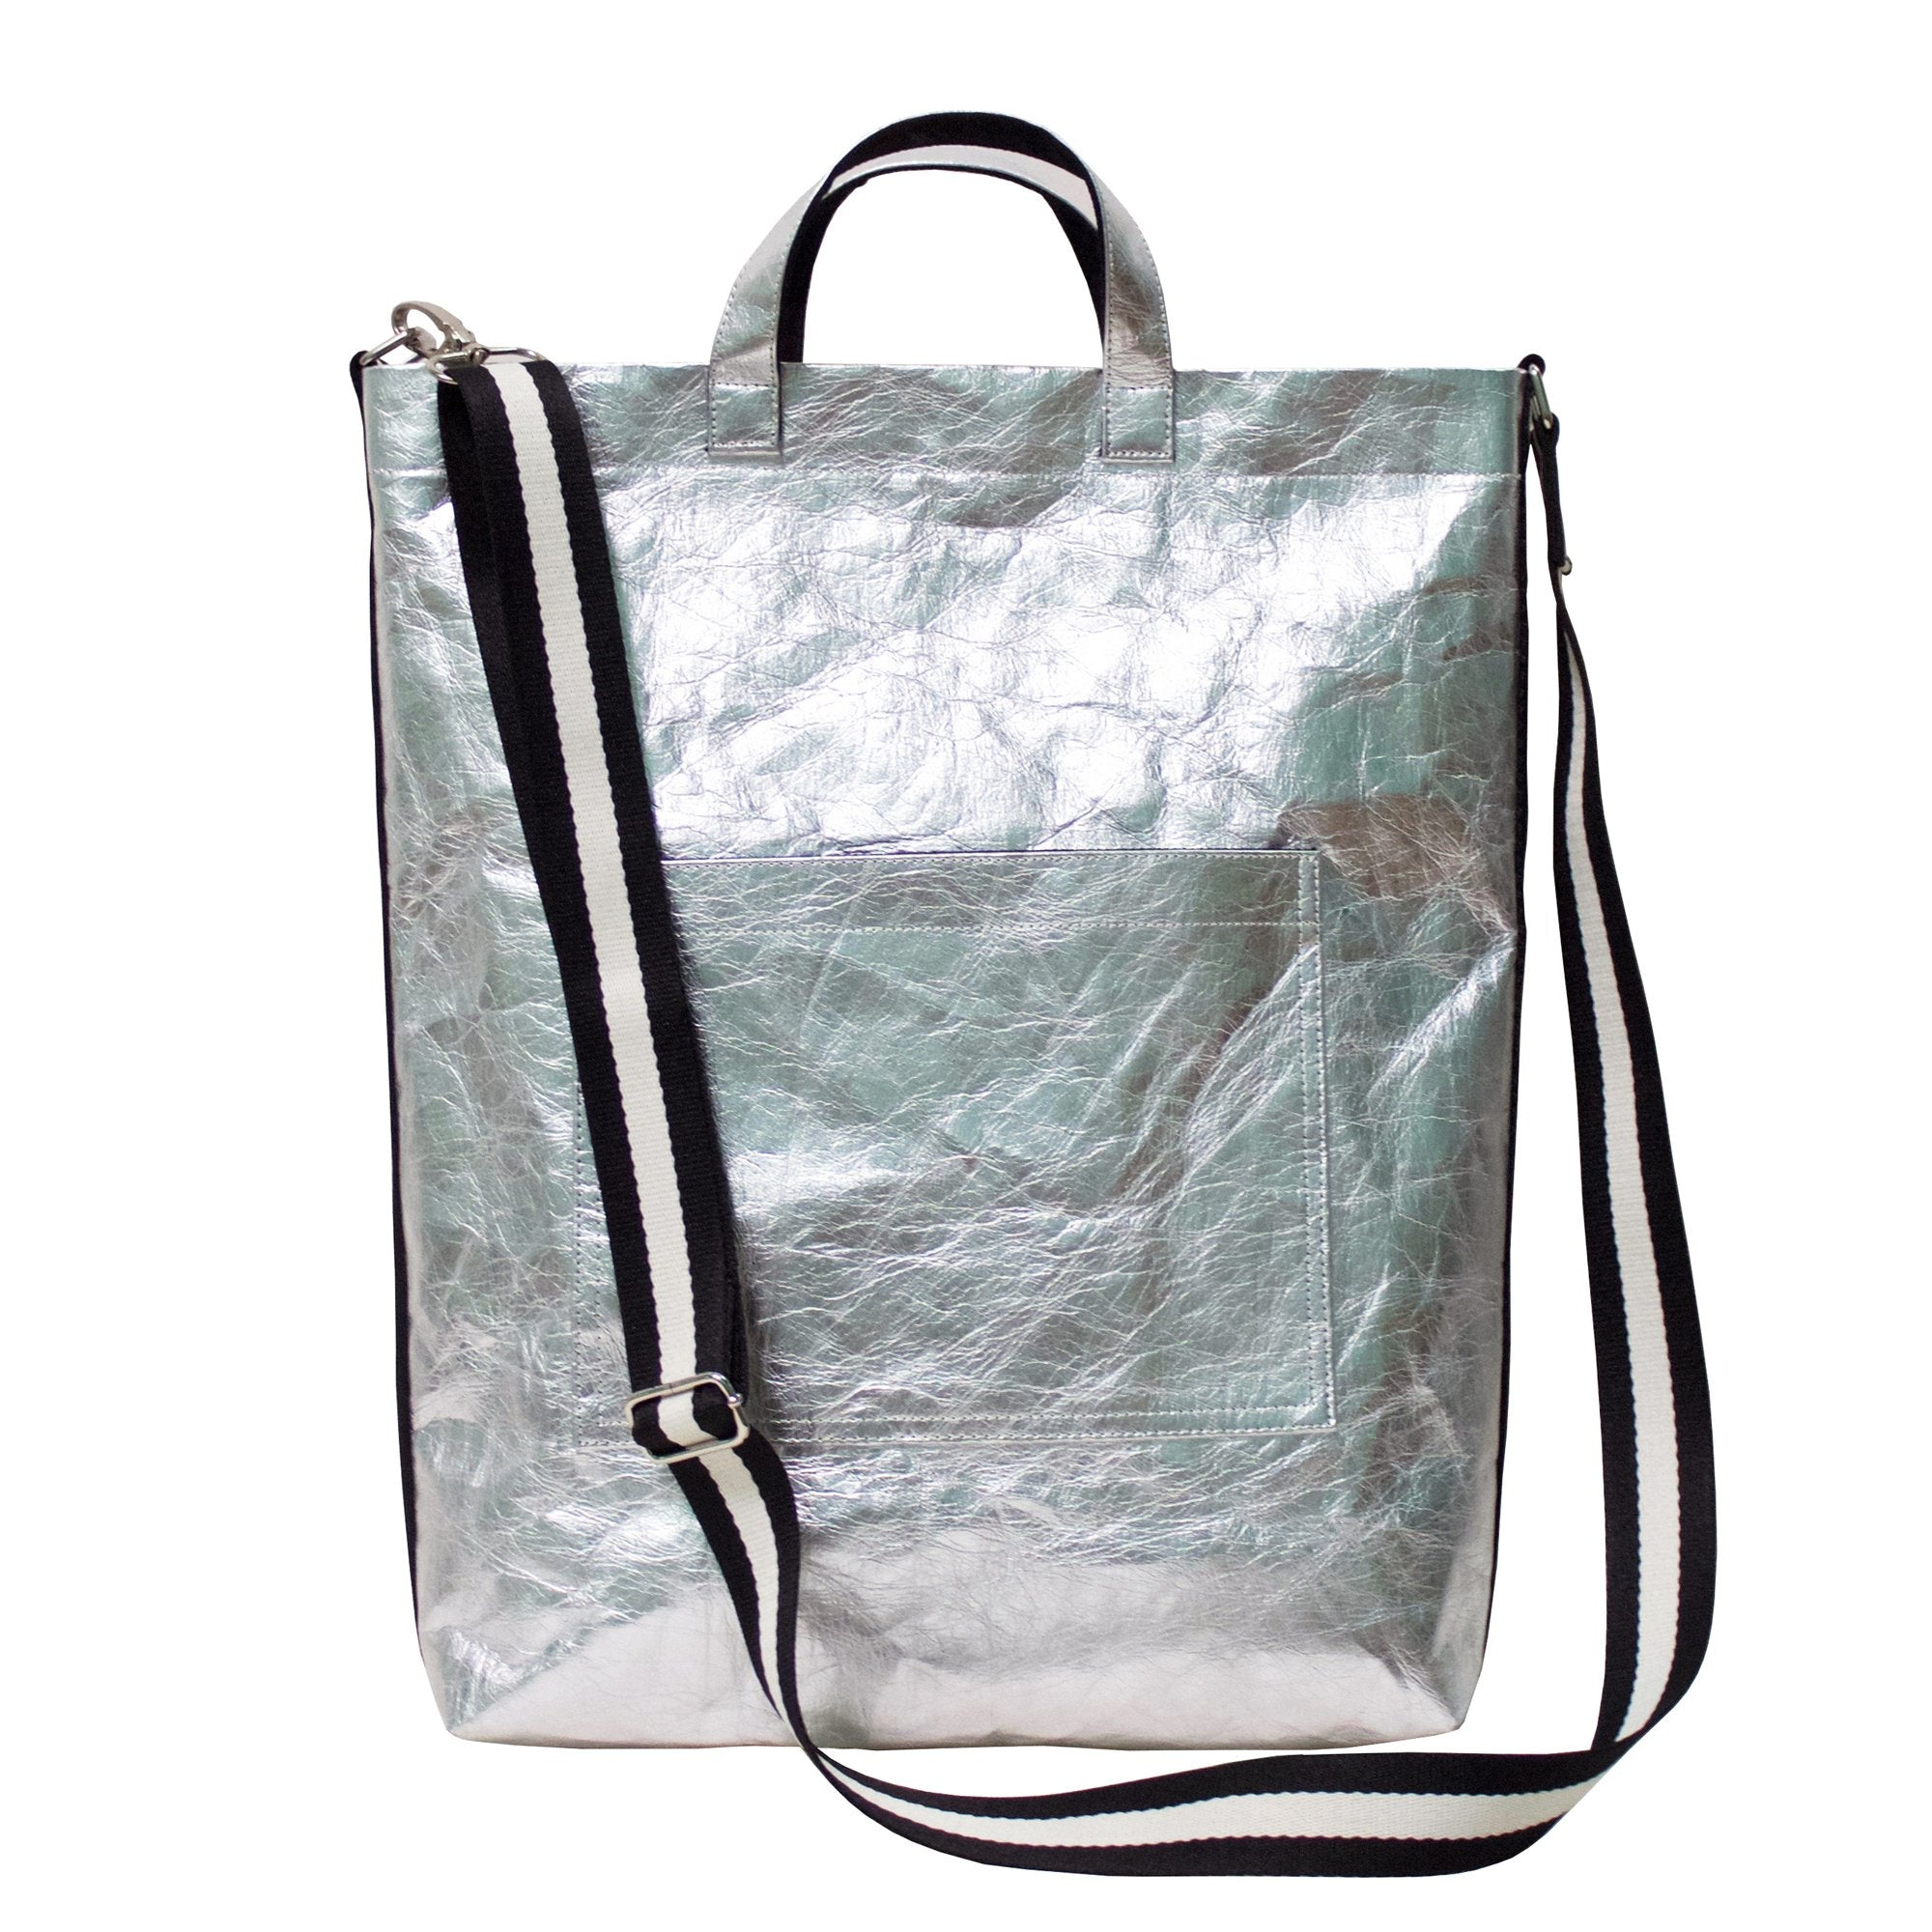 Demeter Silver Shoulder / Cross Body Bag made from Metallic Washable Paper-Kaban-Temples and Markets